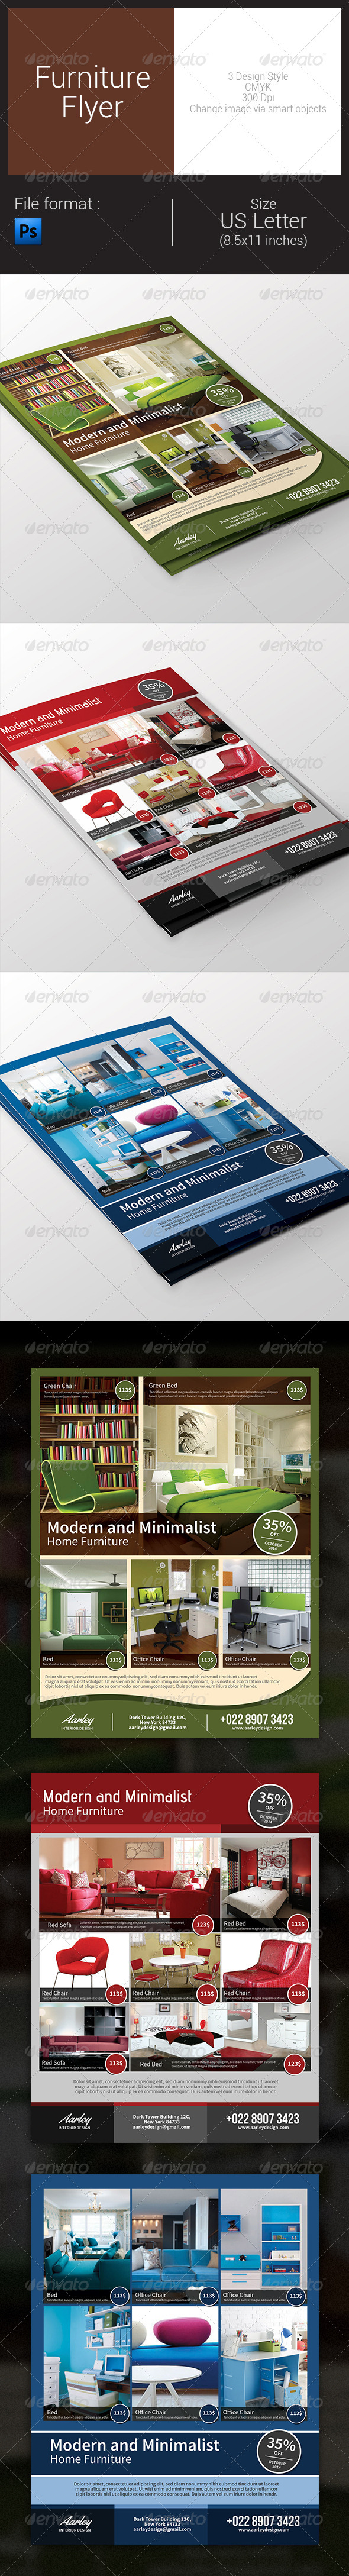 GraphicRiver Furniture Flyer 8550093